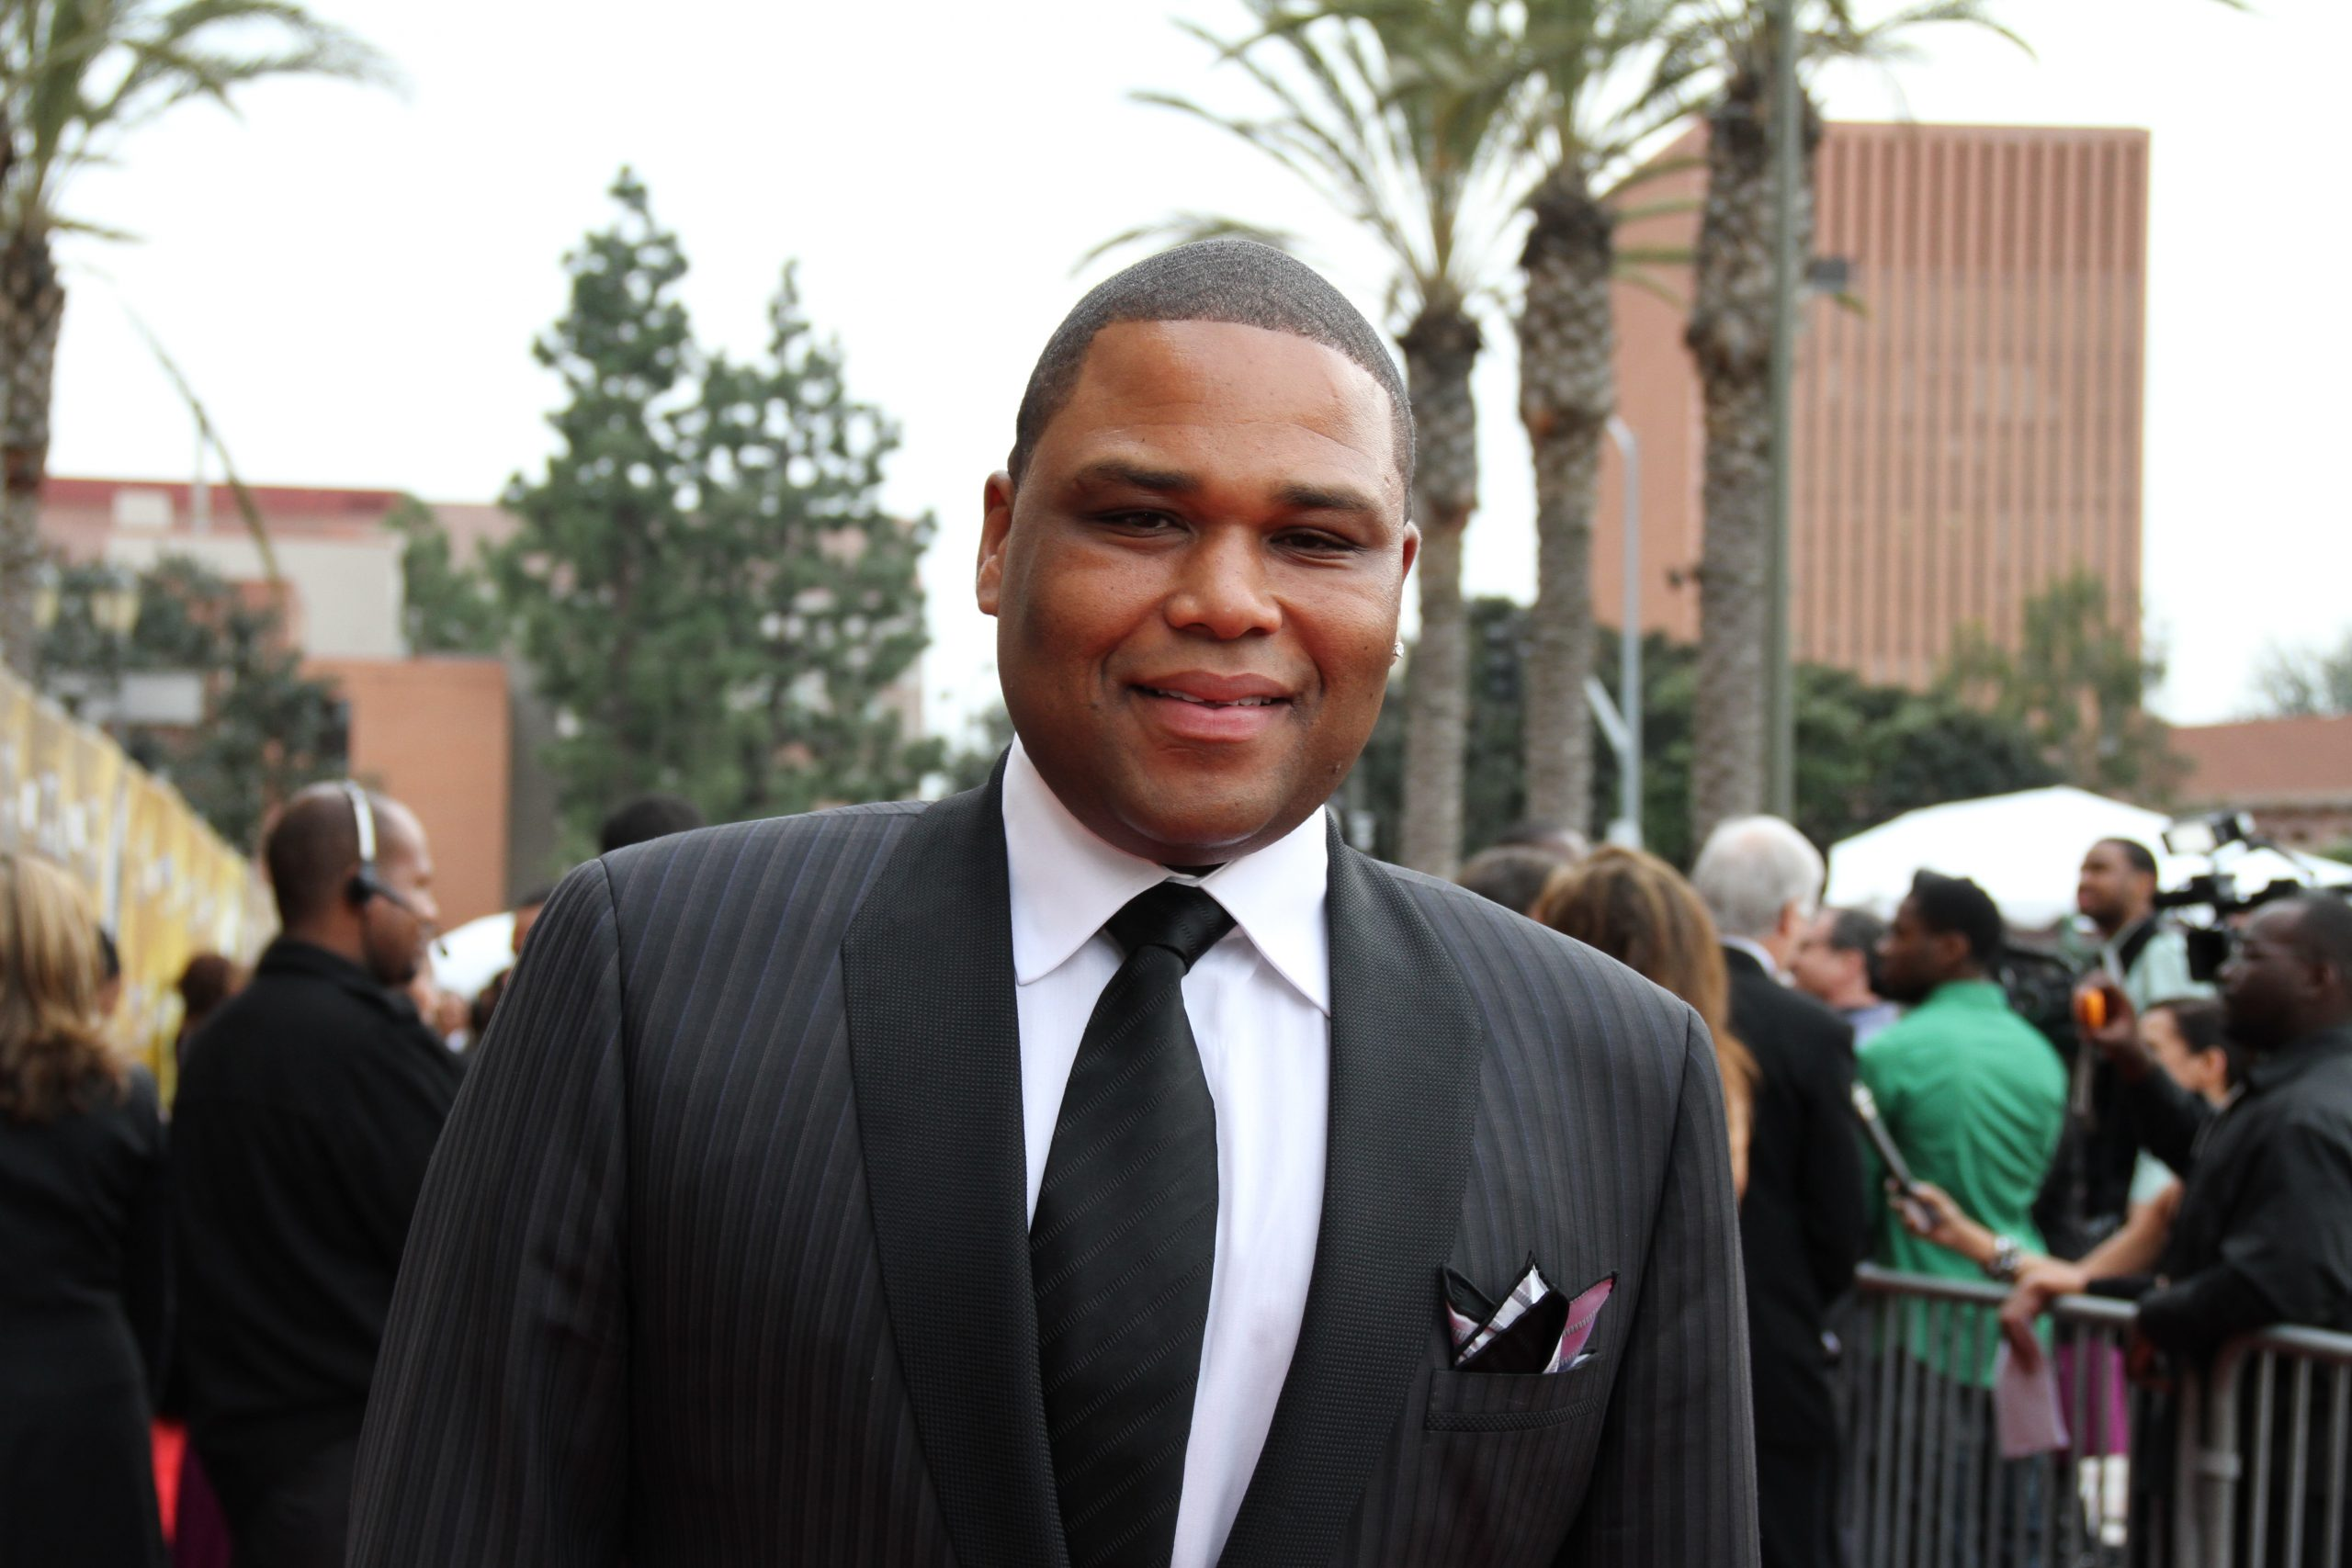 F.A.C.E. Diabetes and Actor Anthony Anderson Encourage African Americans to 'Make Over Your Sunday Meal' News4usonline.com